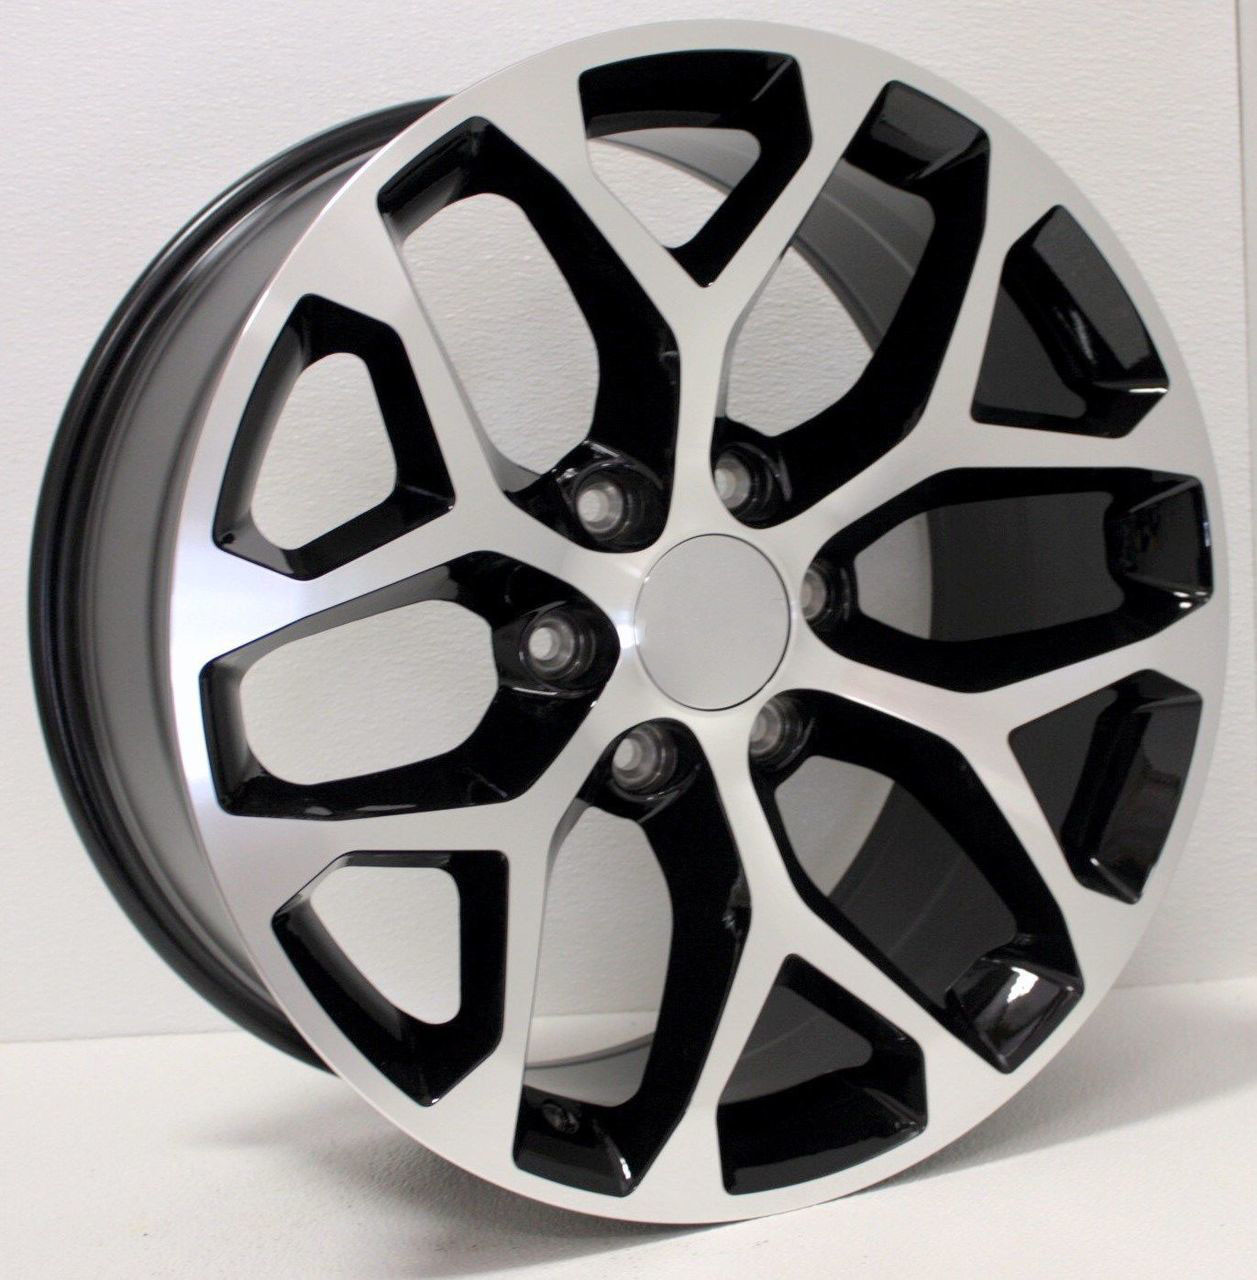 22 Inch Tires >> Chevy 22 Inch Black And Machine Snowflake Rims For Silverado Tahoe